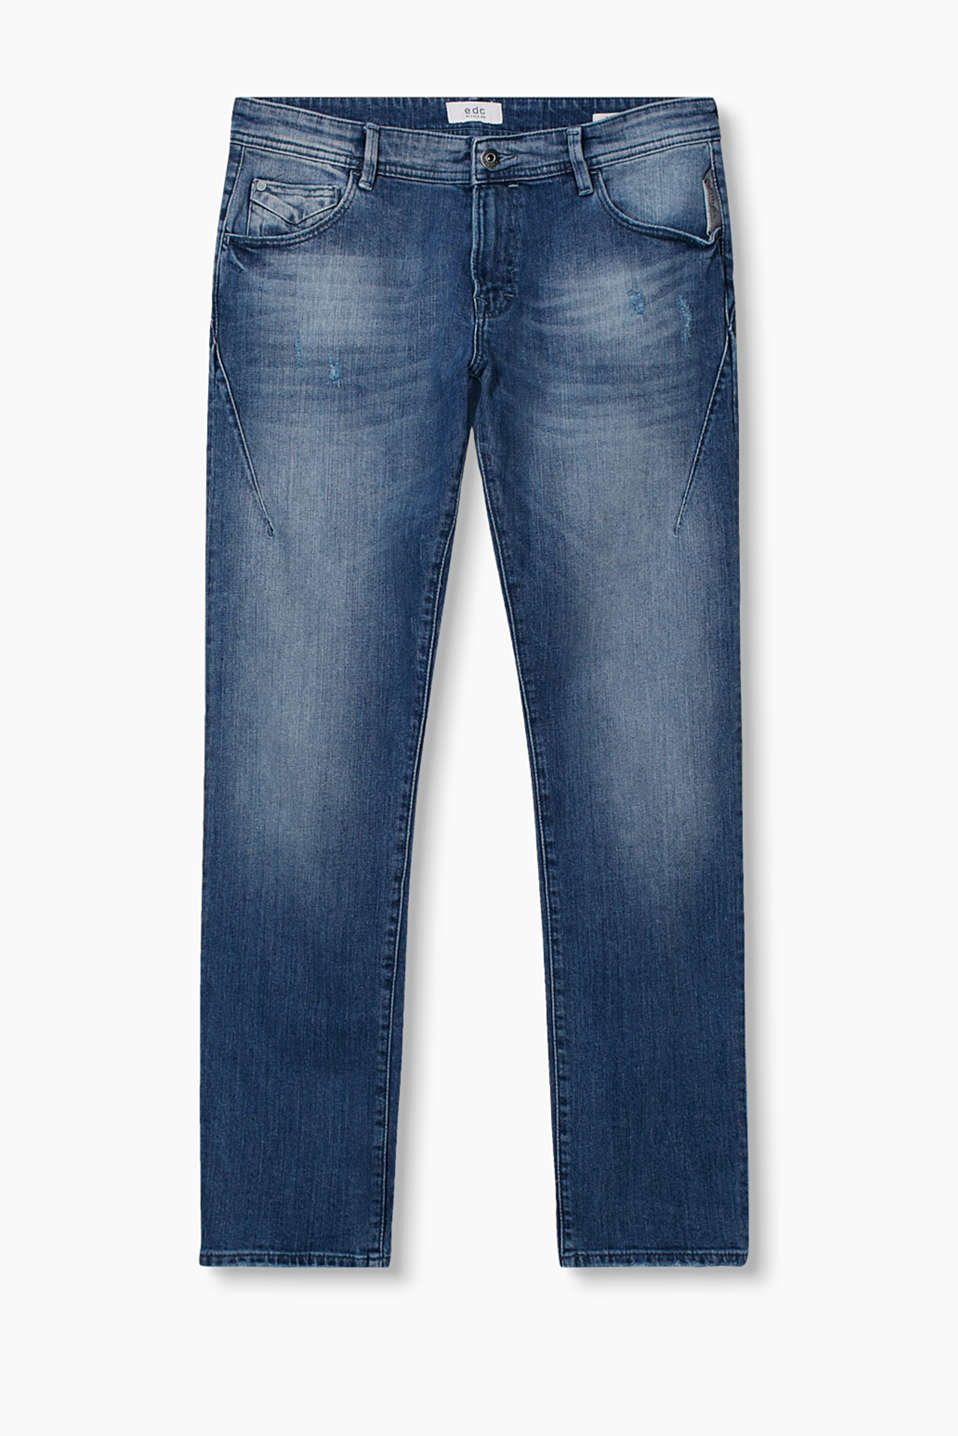 Stone-washed five-pocket jeans in blended cotton, with vintage effects